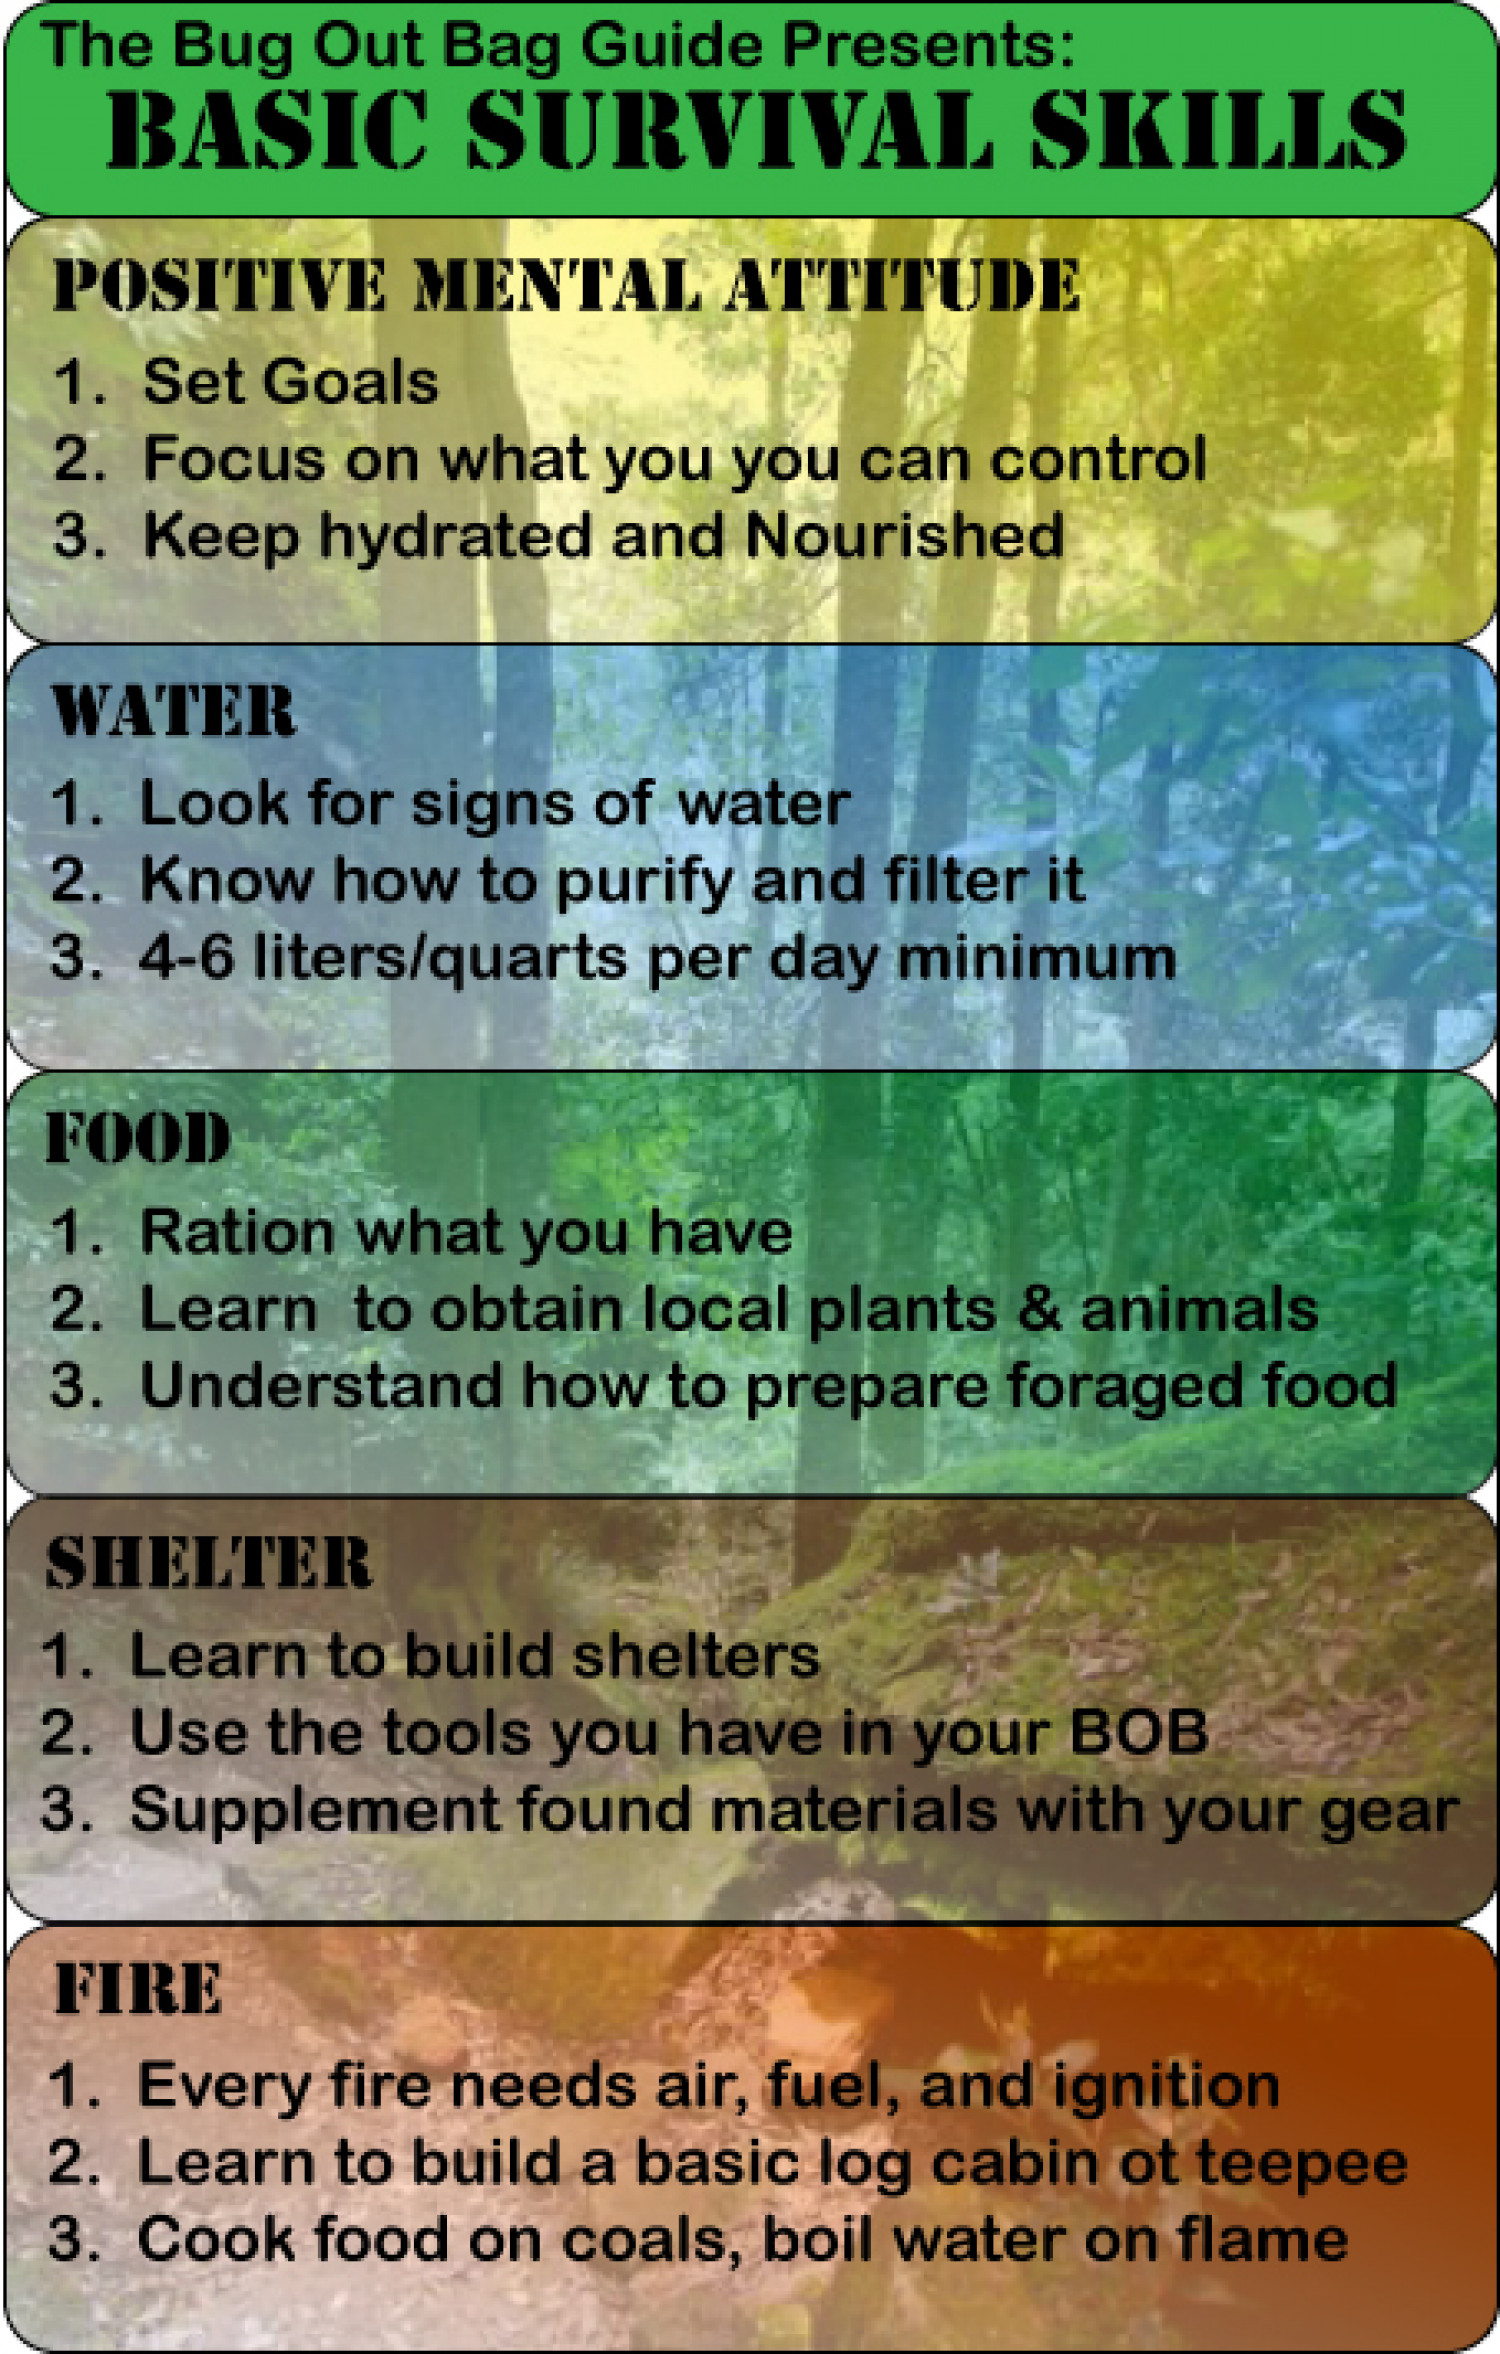 Basic Survival Skills YOU Need When Bugging Out Infographic